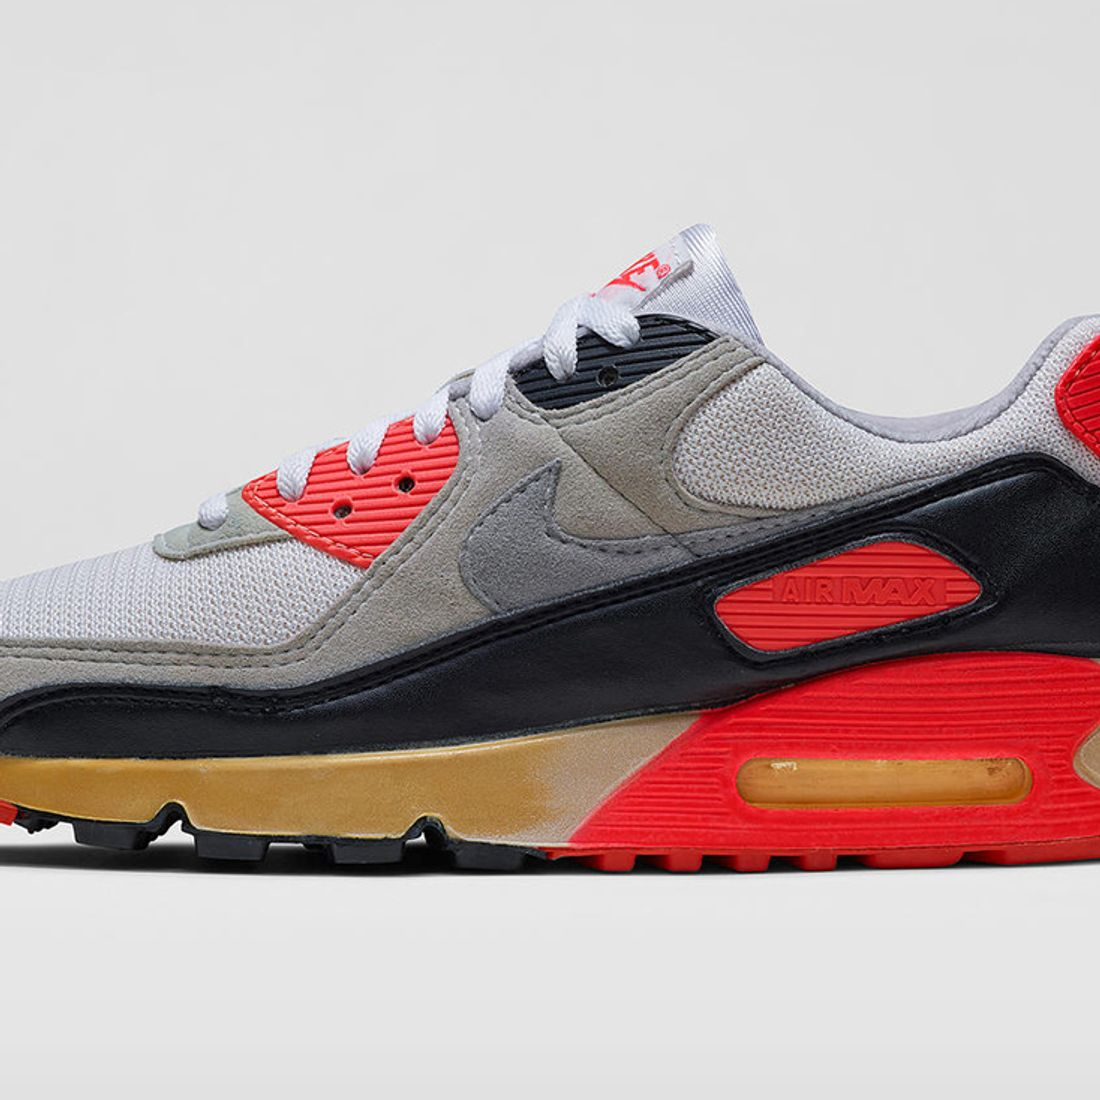 doce Mojado aterrizaje  The All-Time Greatest Nike Air Max 90s: Part 1 - Sneaker Freaker